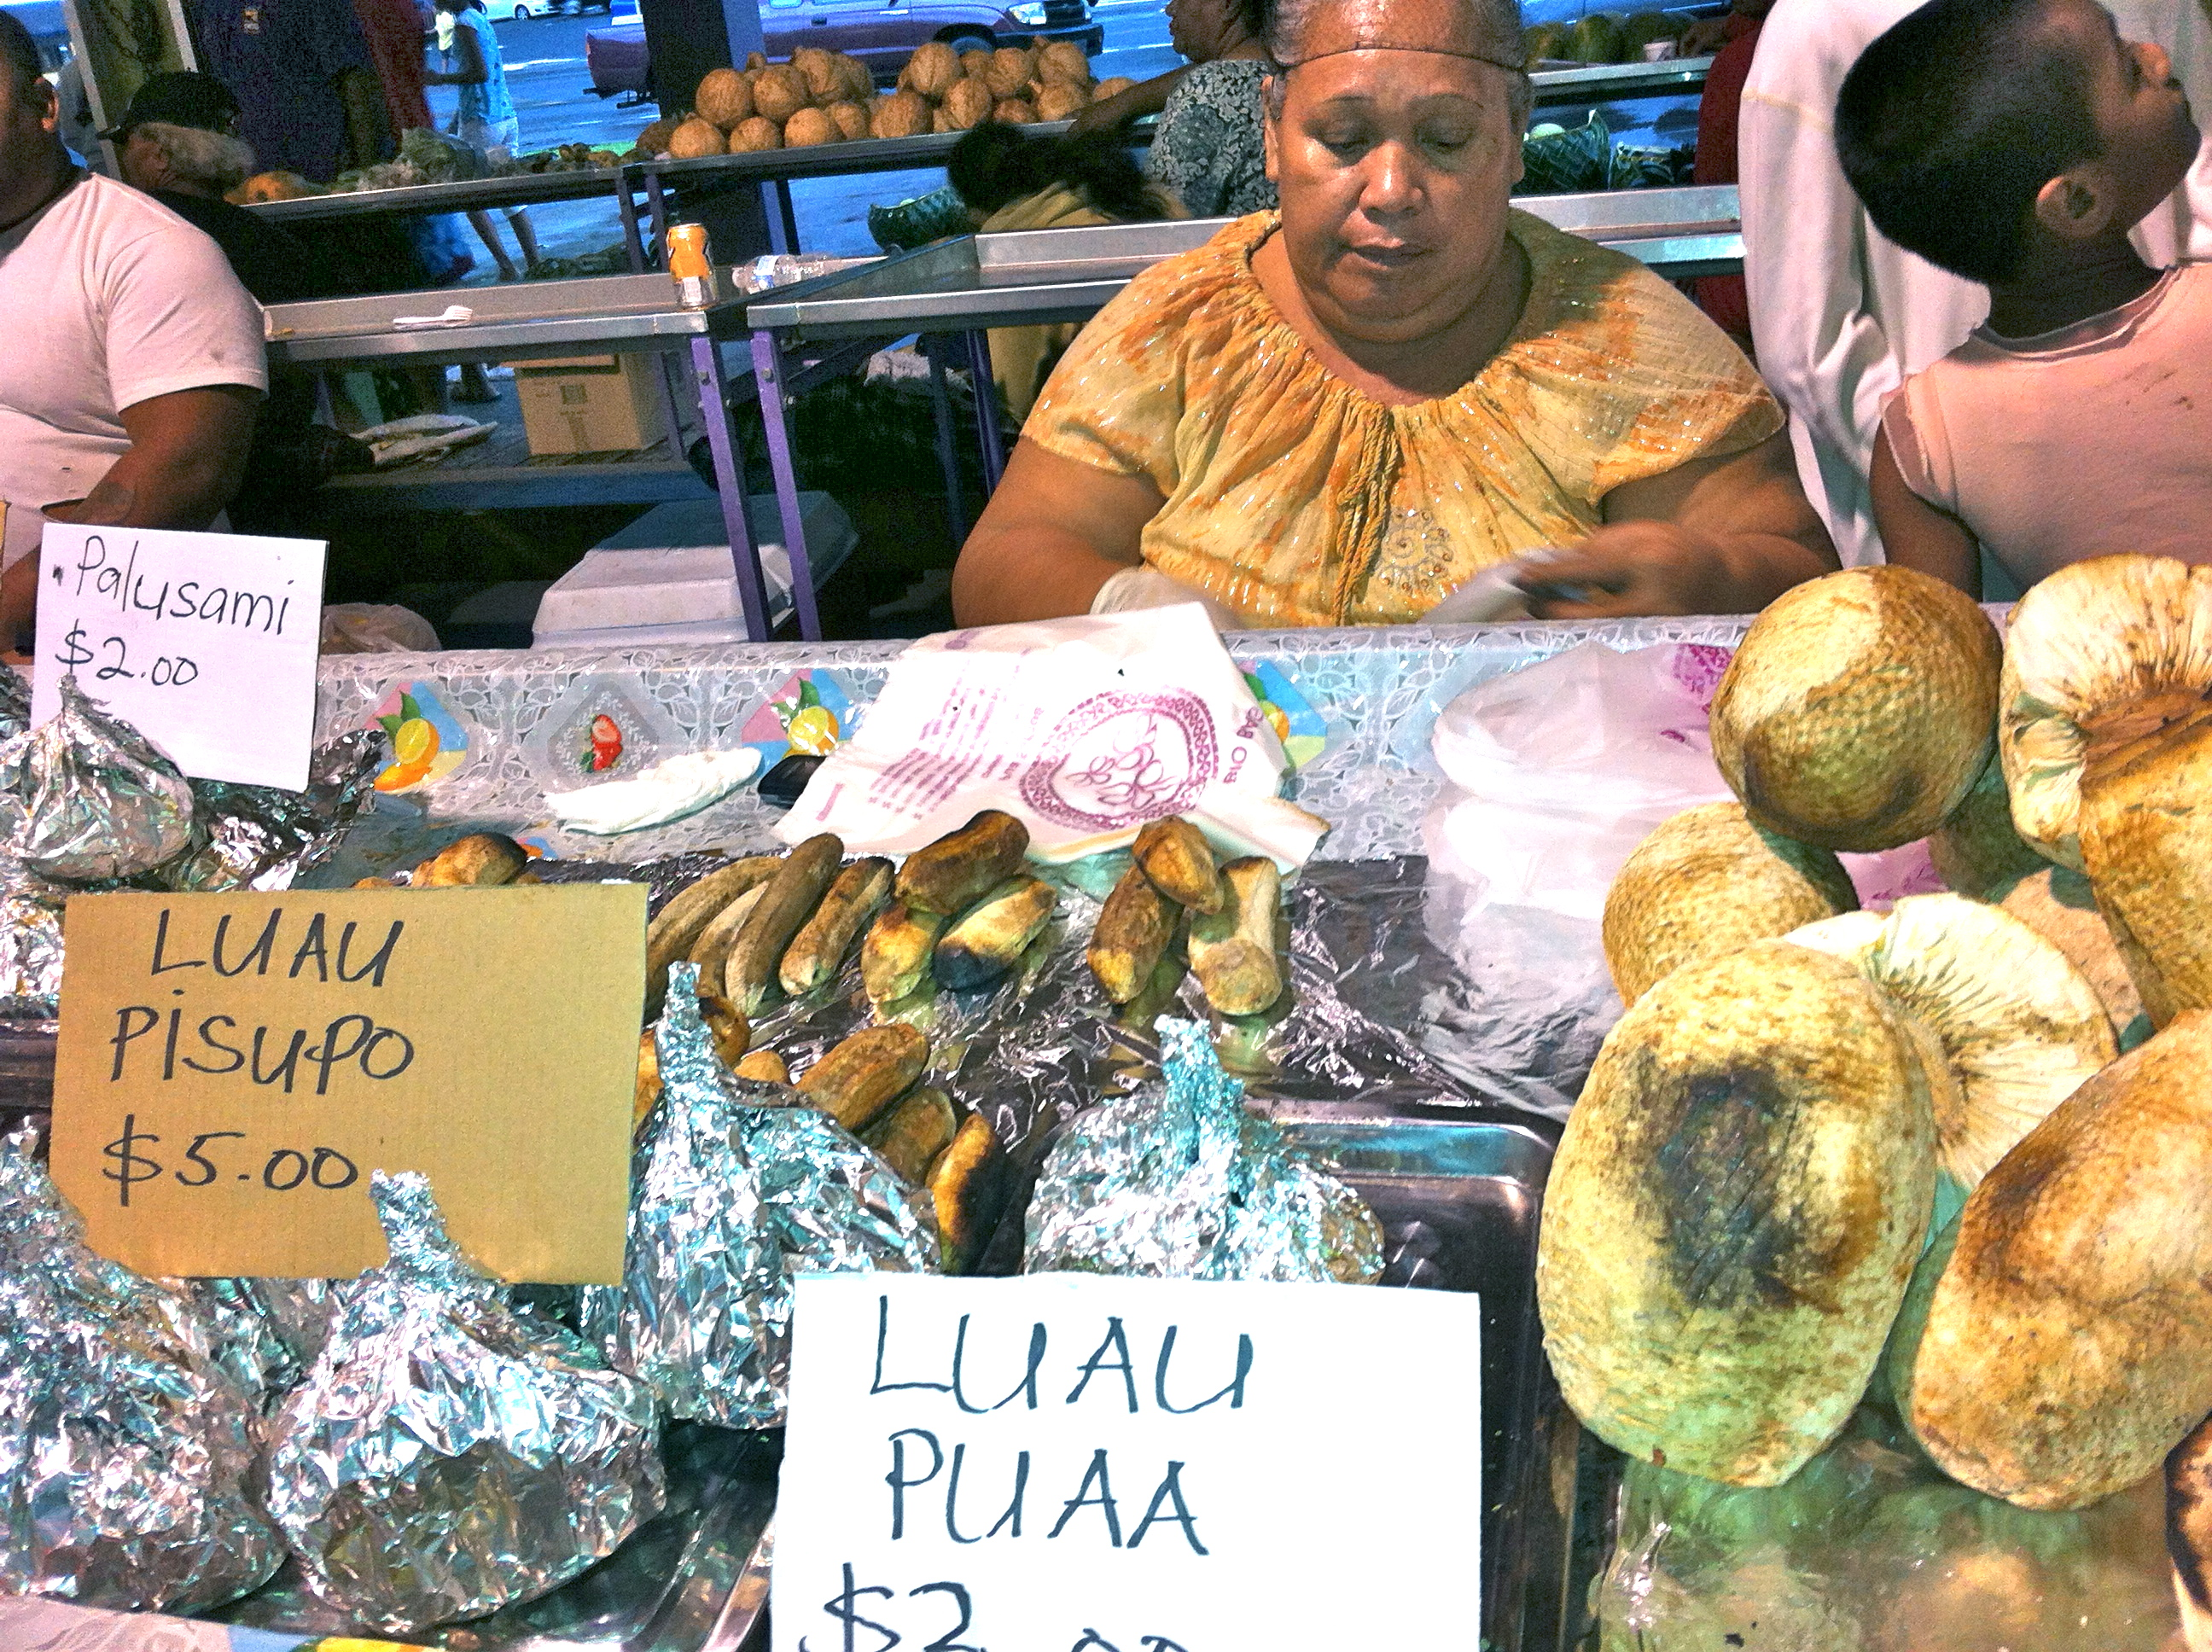 More food being sold at the market